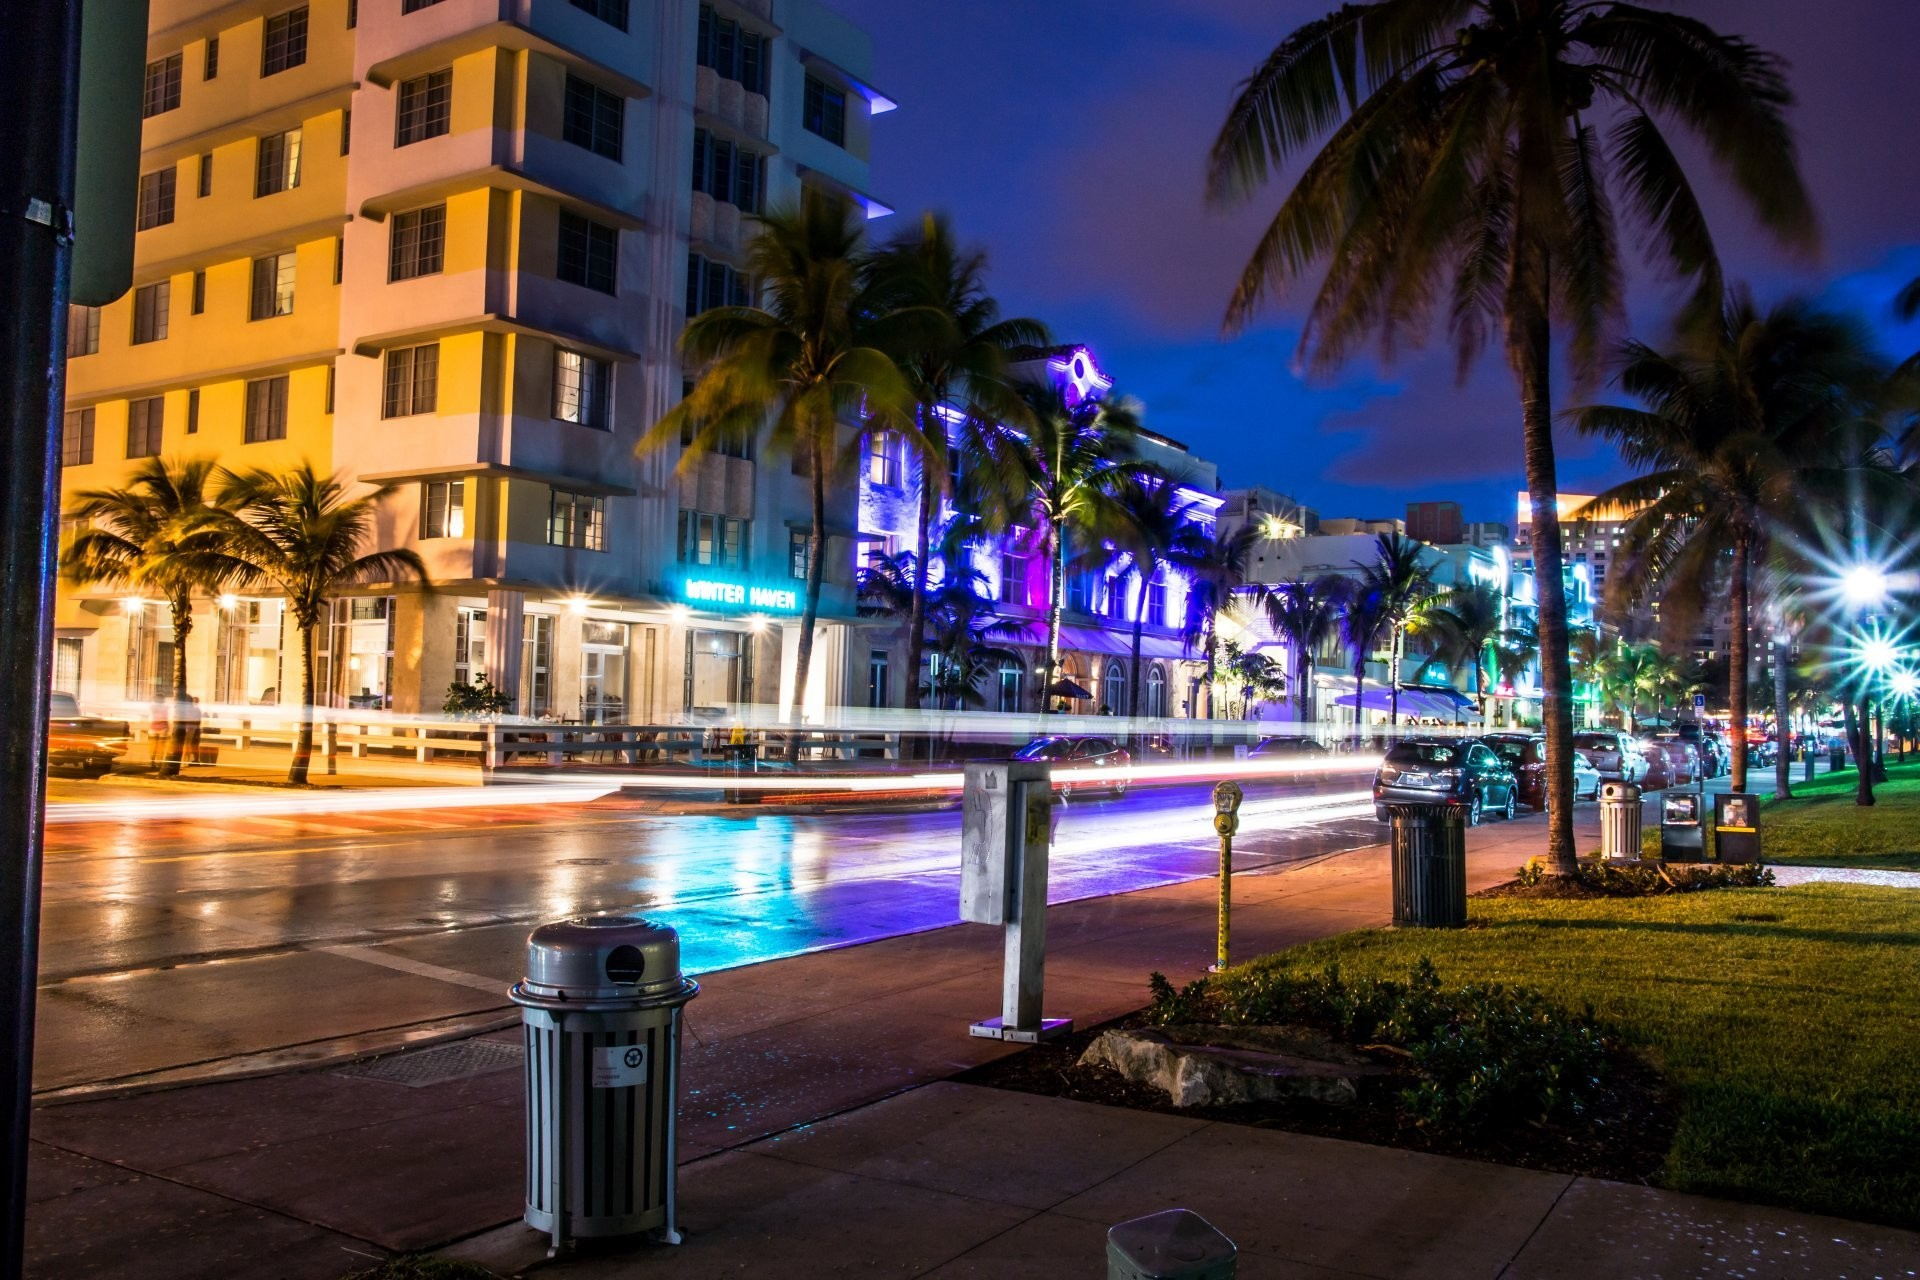 1920x1280 miami florida florida miami night lights street vice city